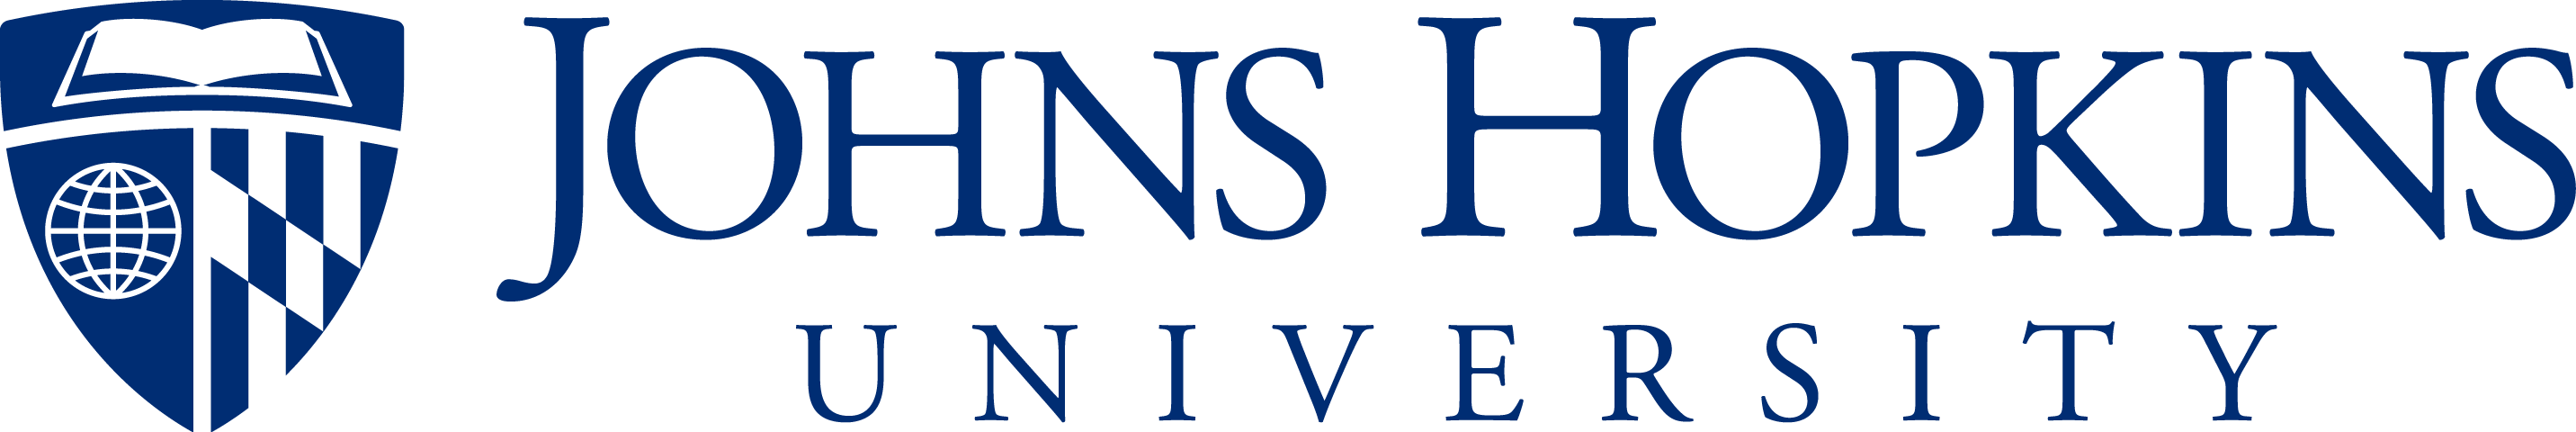 best overseas education consultant in India to study in Johns Hopkins University